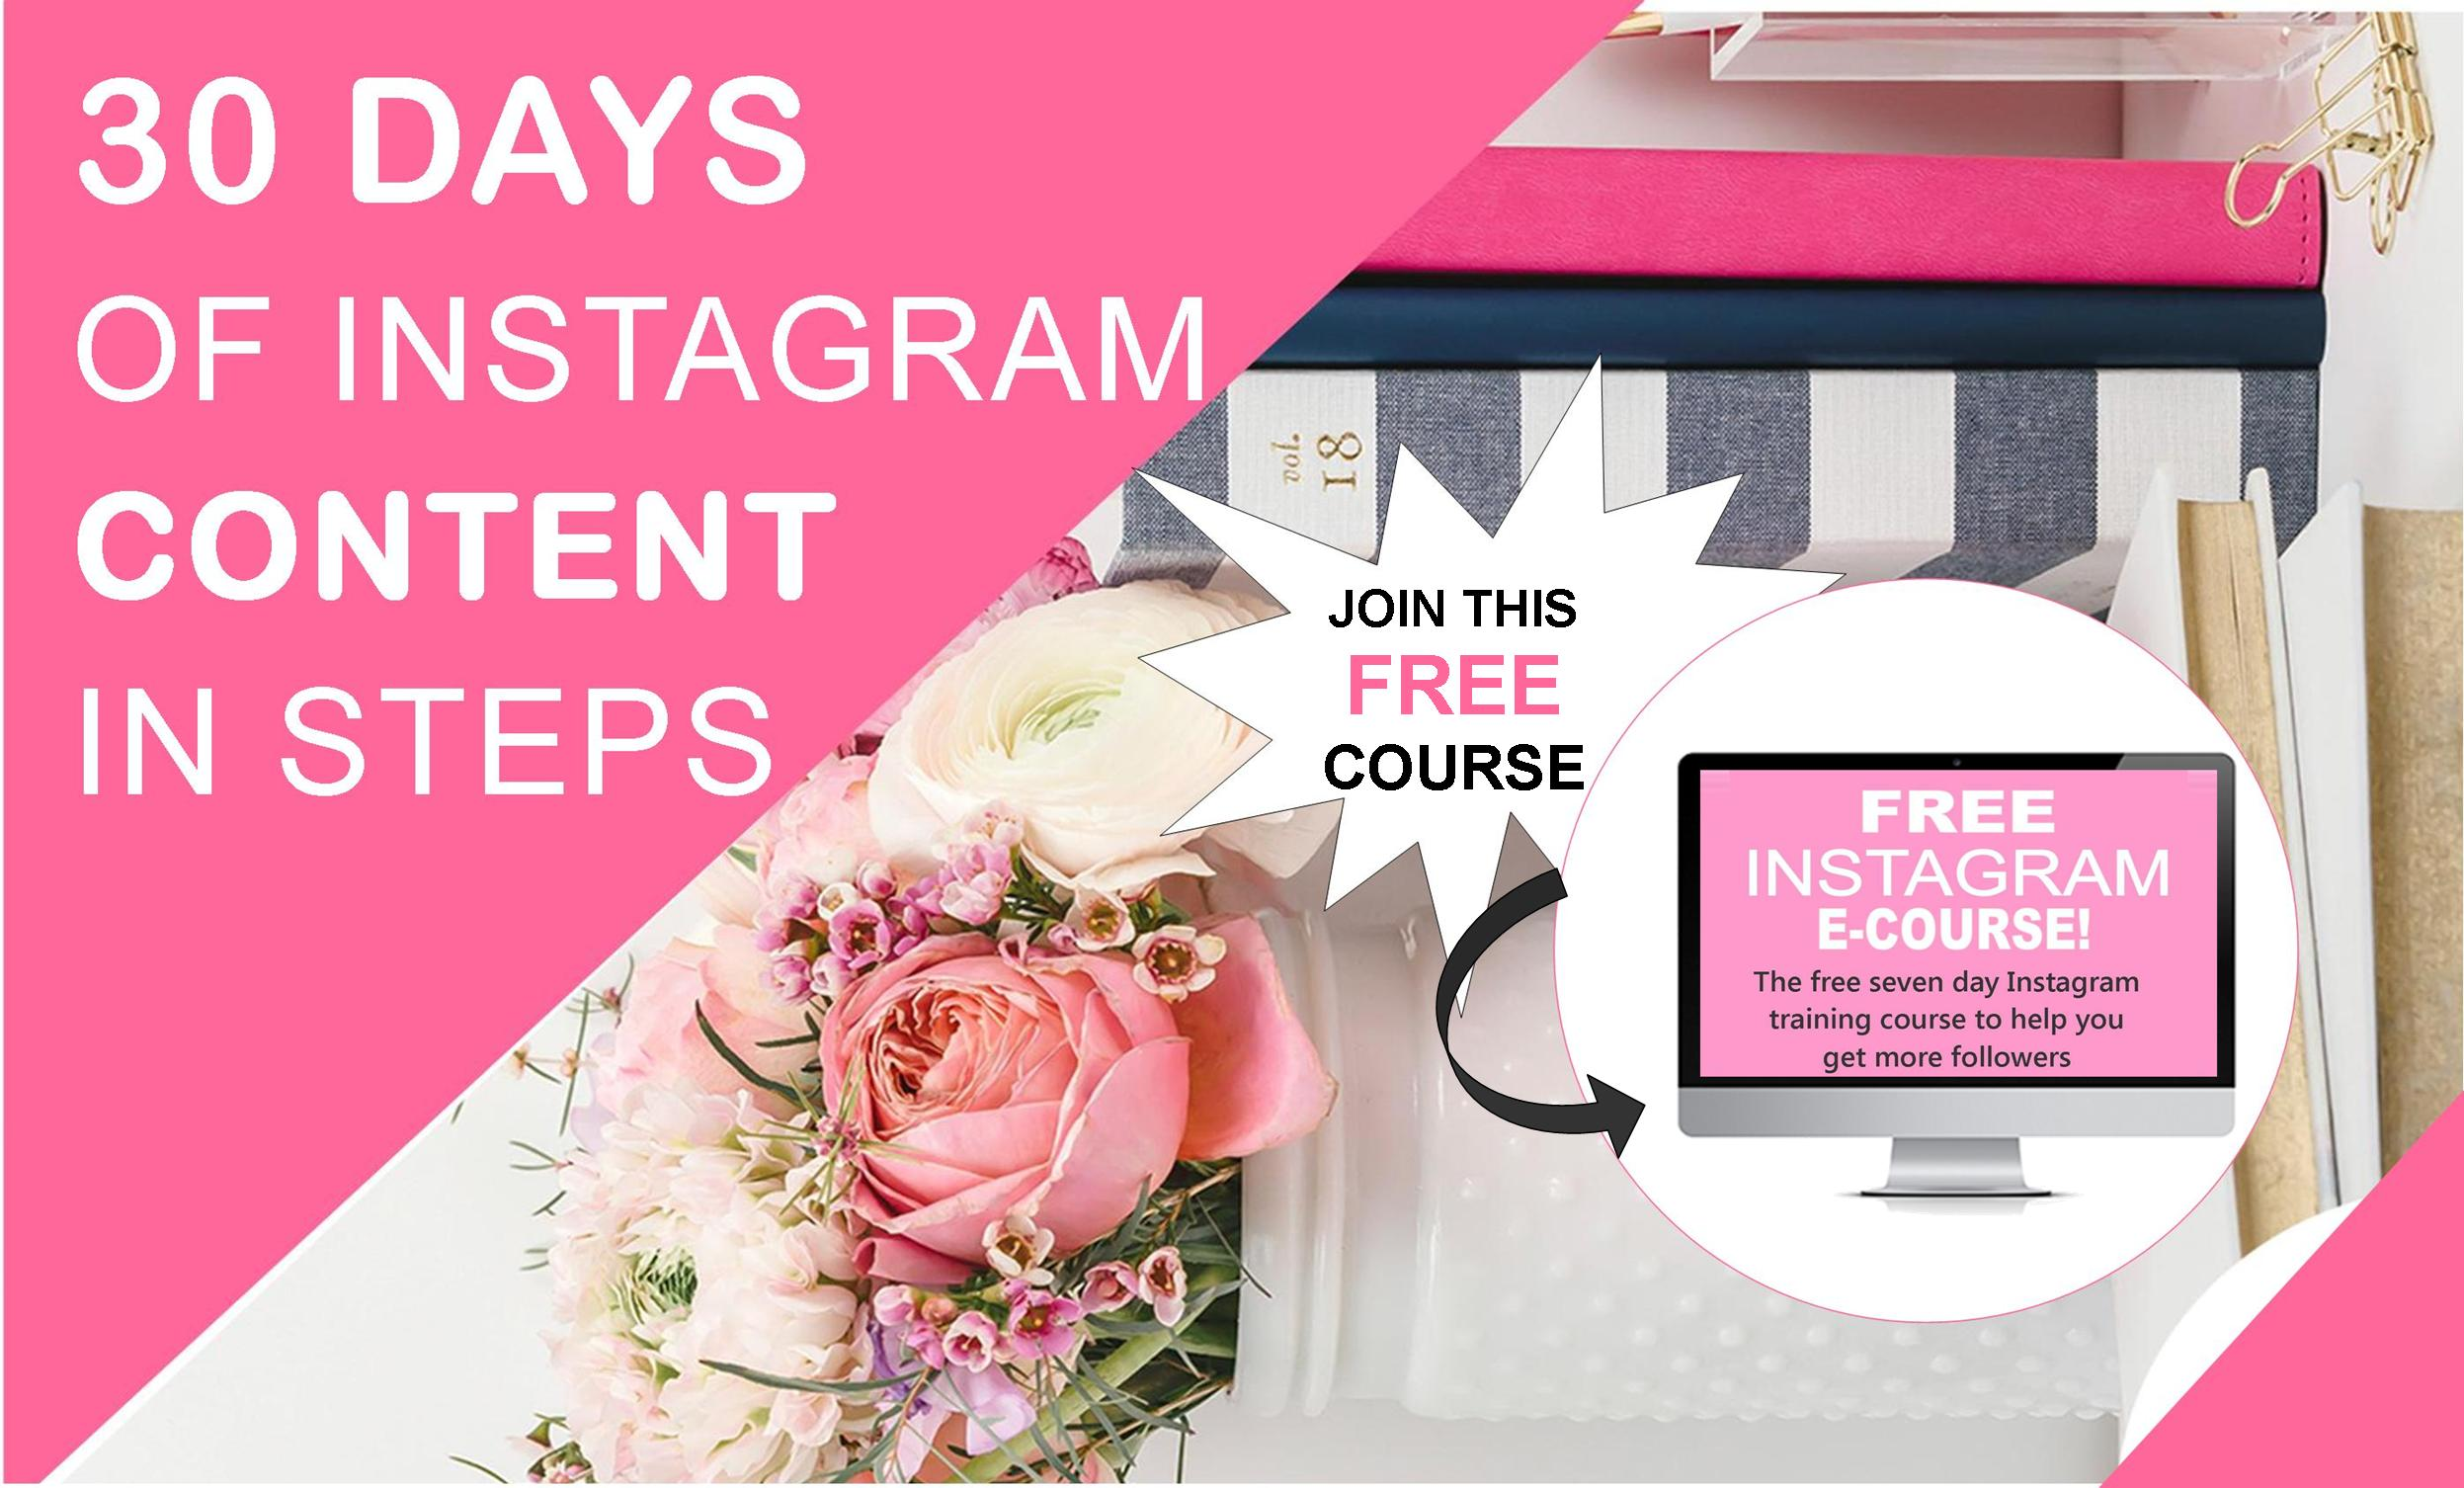 30 Days of Instagram Content in 7 Steps